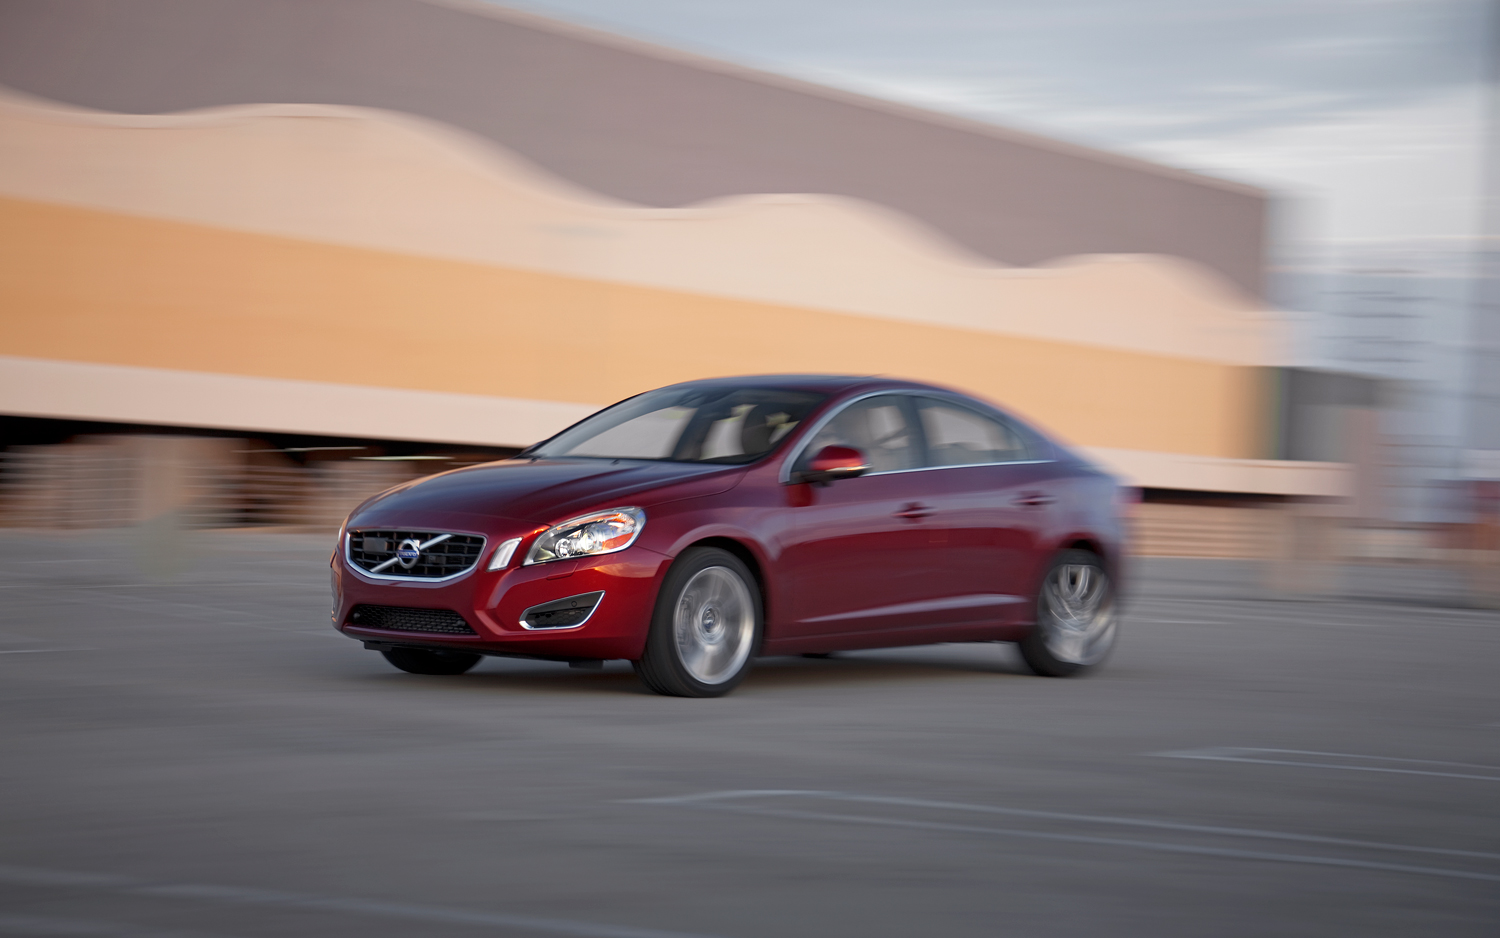 Volvo S60: Before a long distance trip